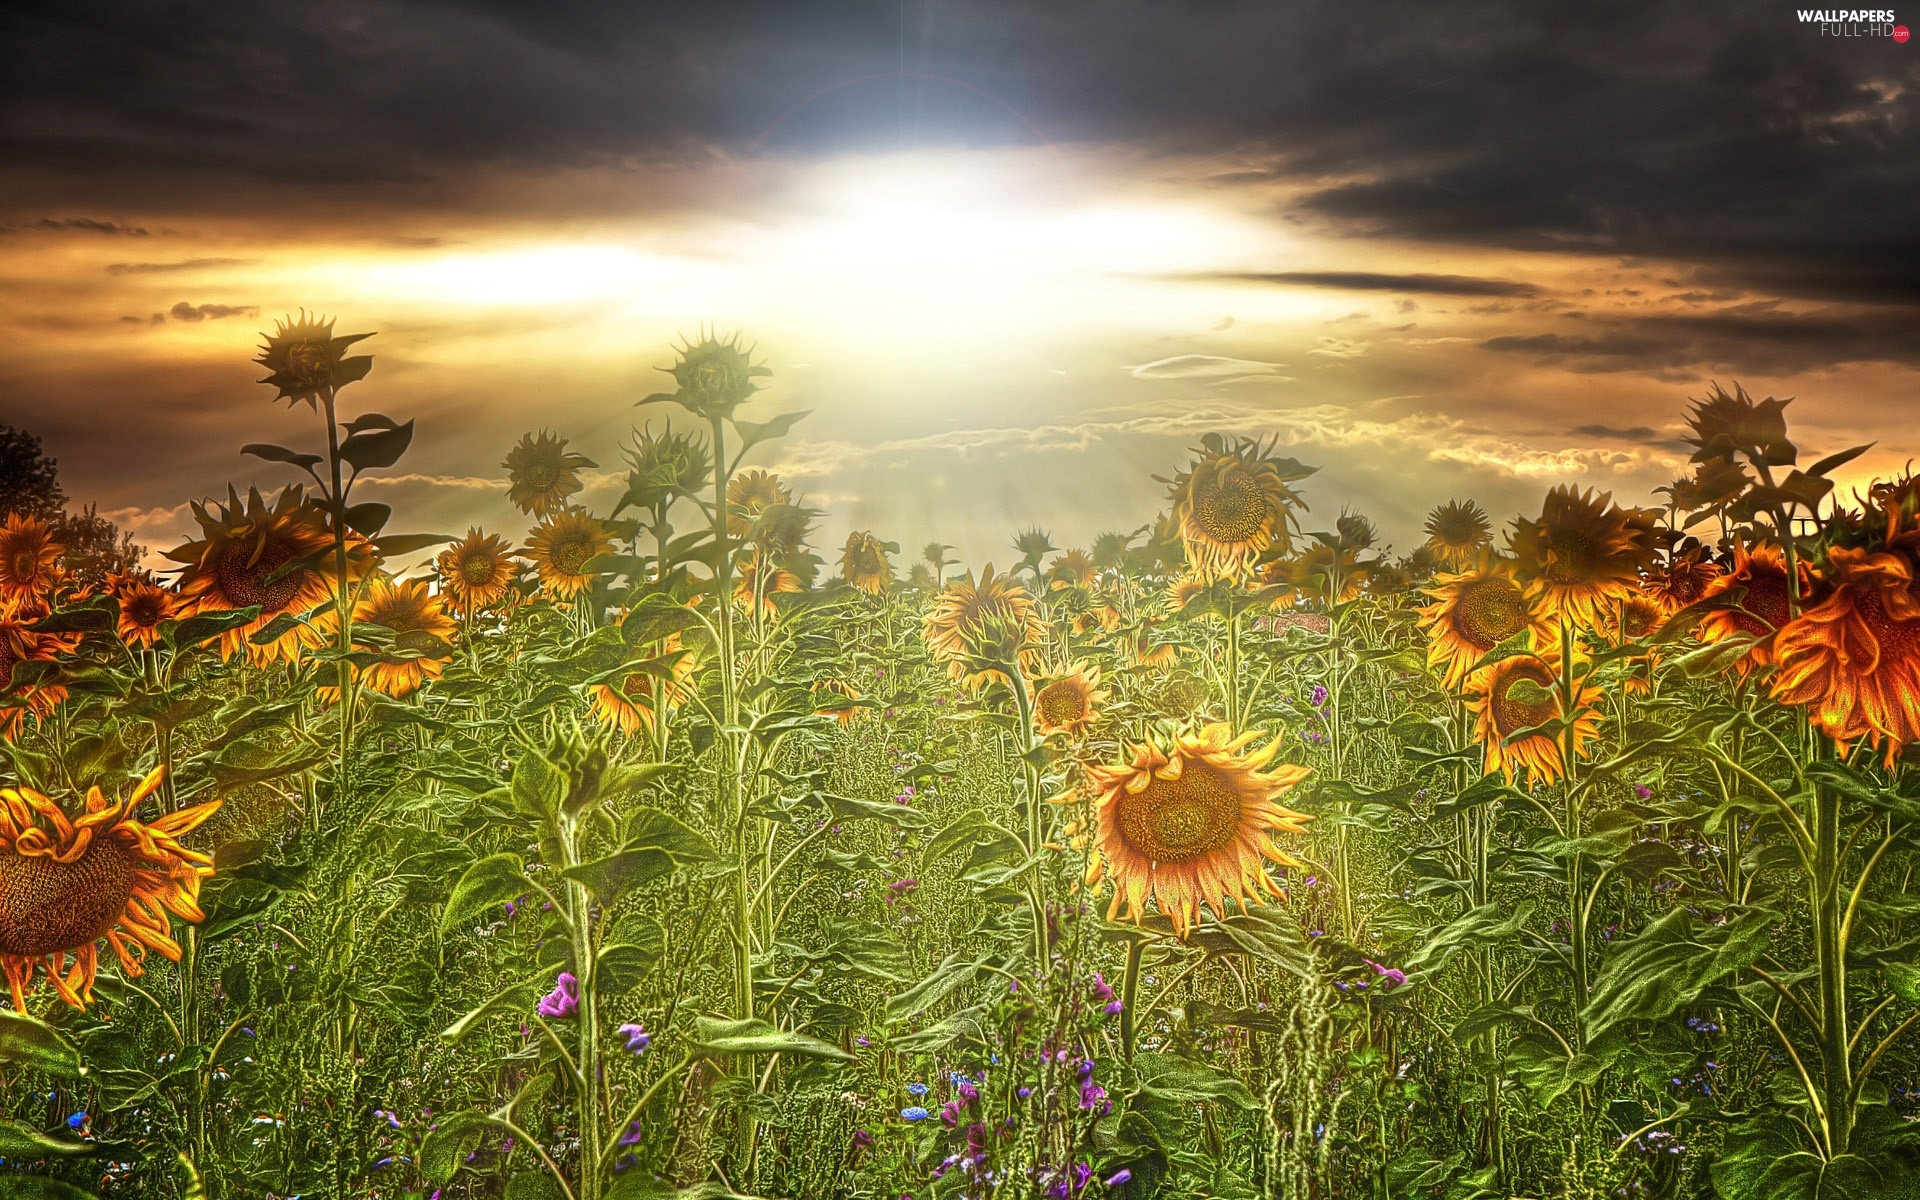 sun, west, Field, sunflowers